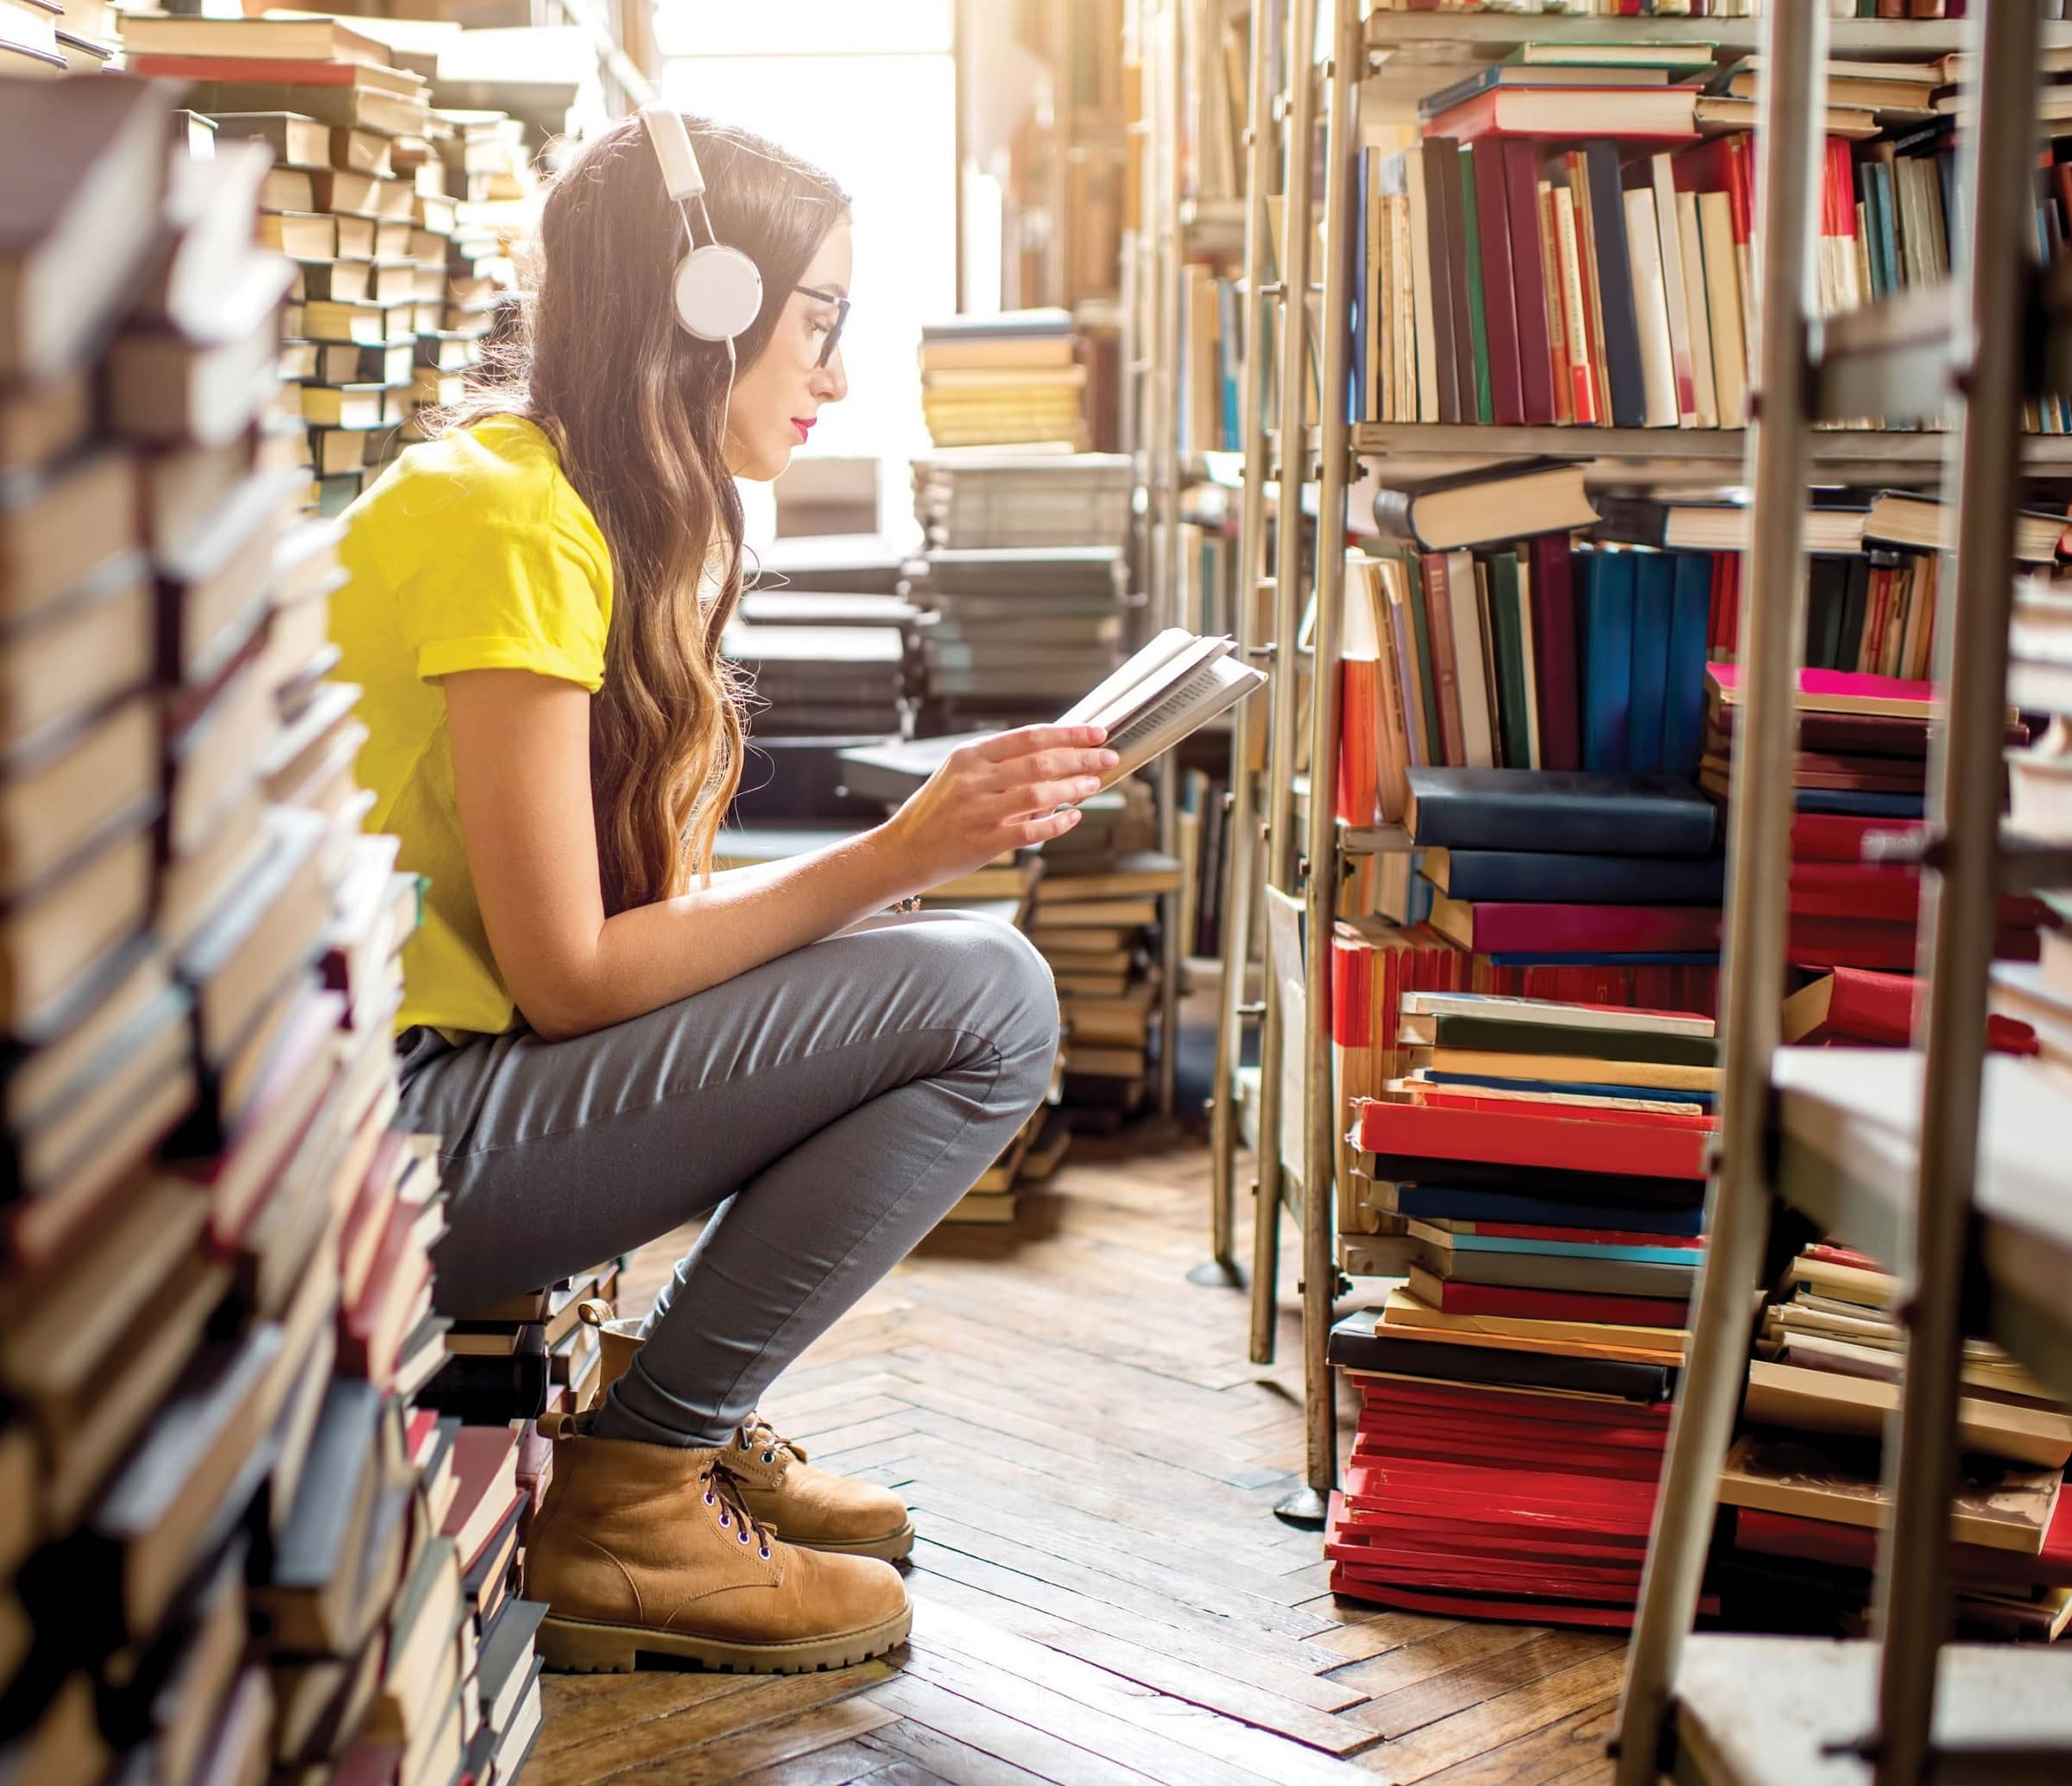 Take Control Of Your Audiobooks